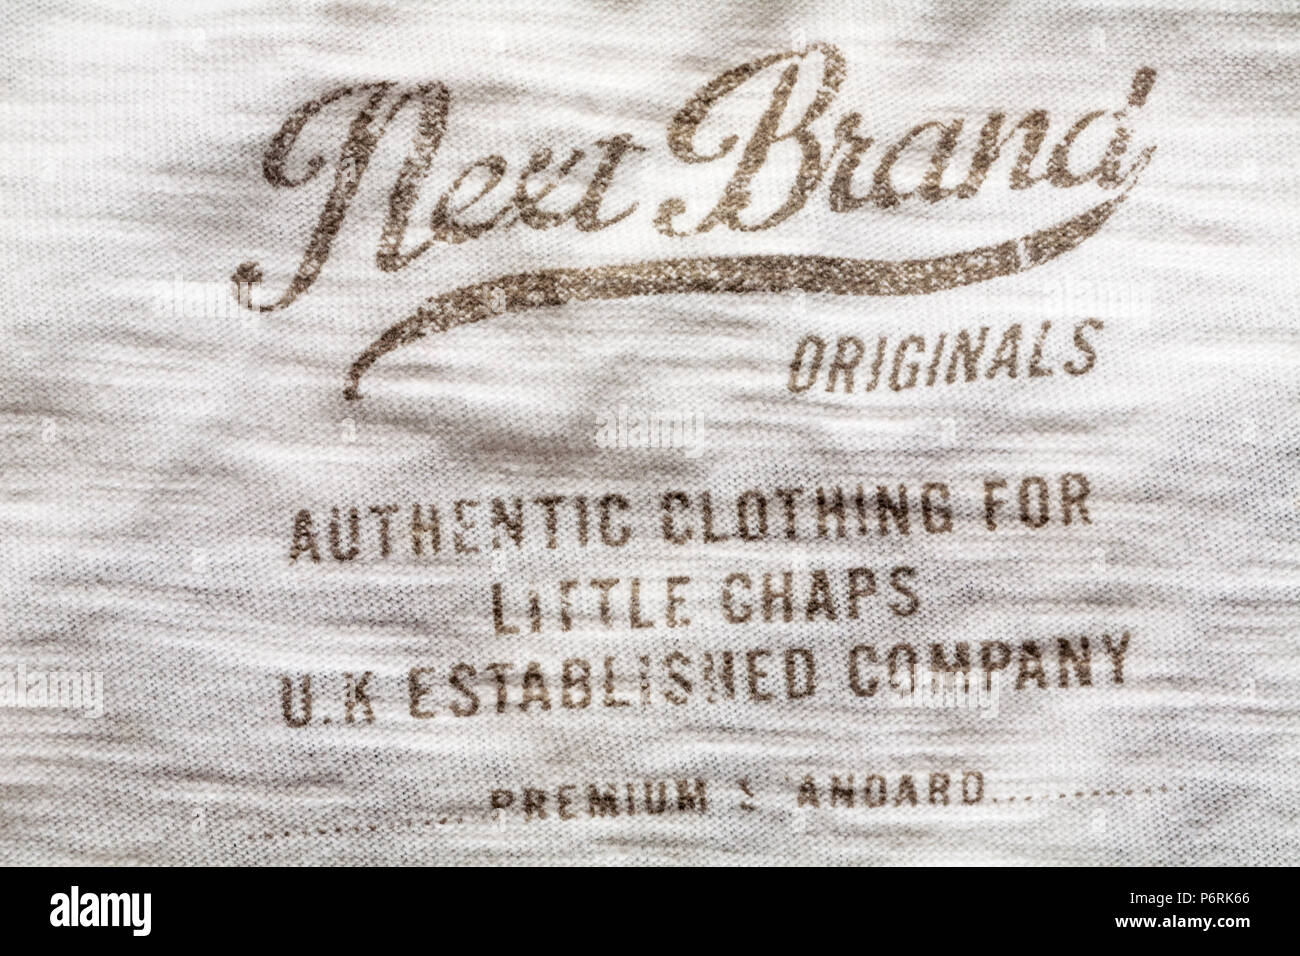 Next Brand Originals authentic clothing for little chaps UK Established Company premium standard - detail printed in clothing Stock Photo